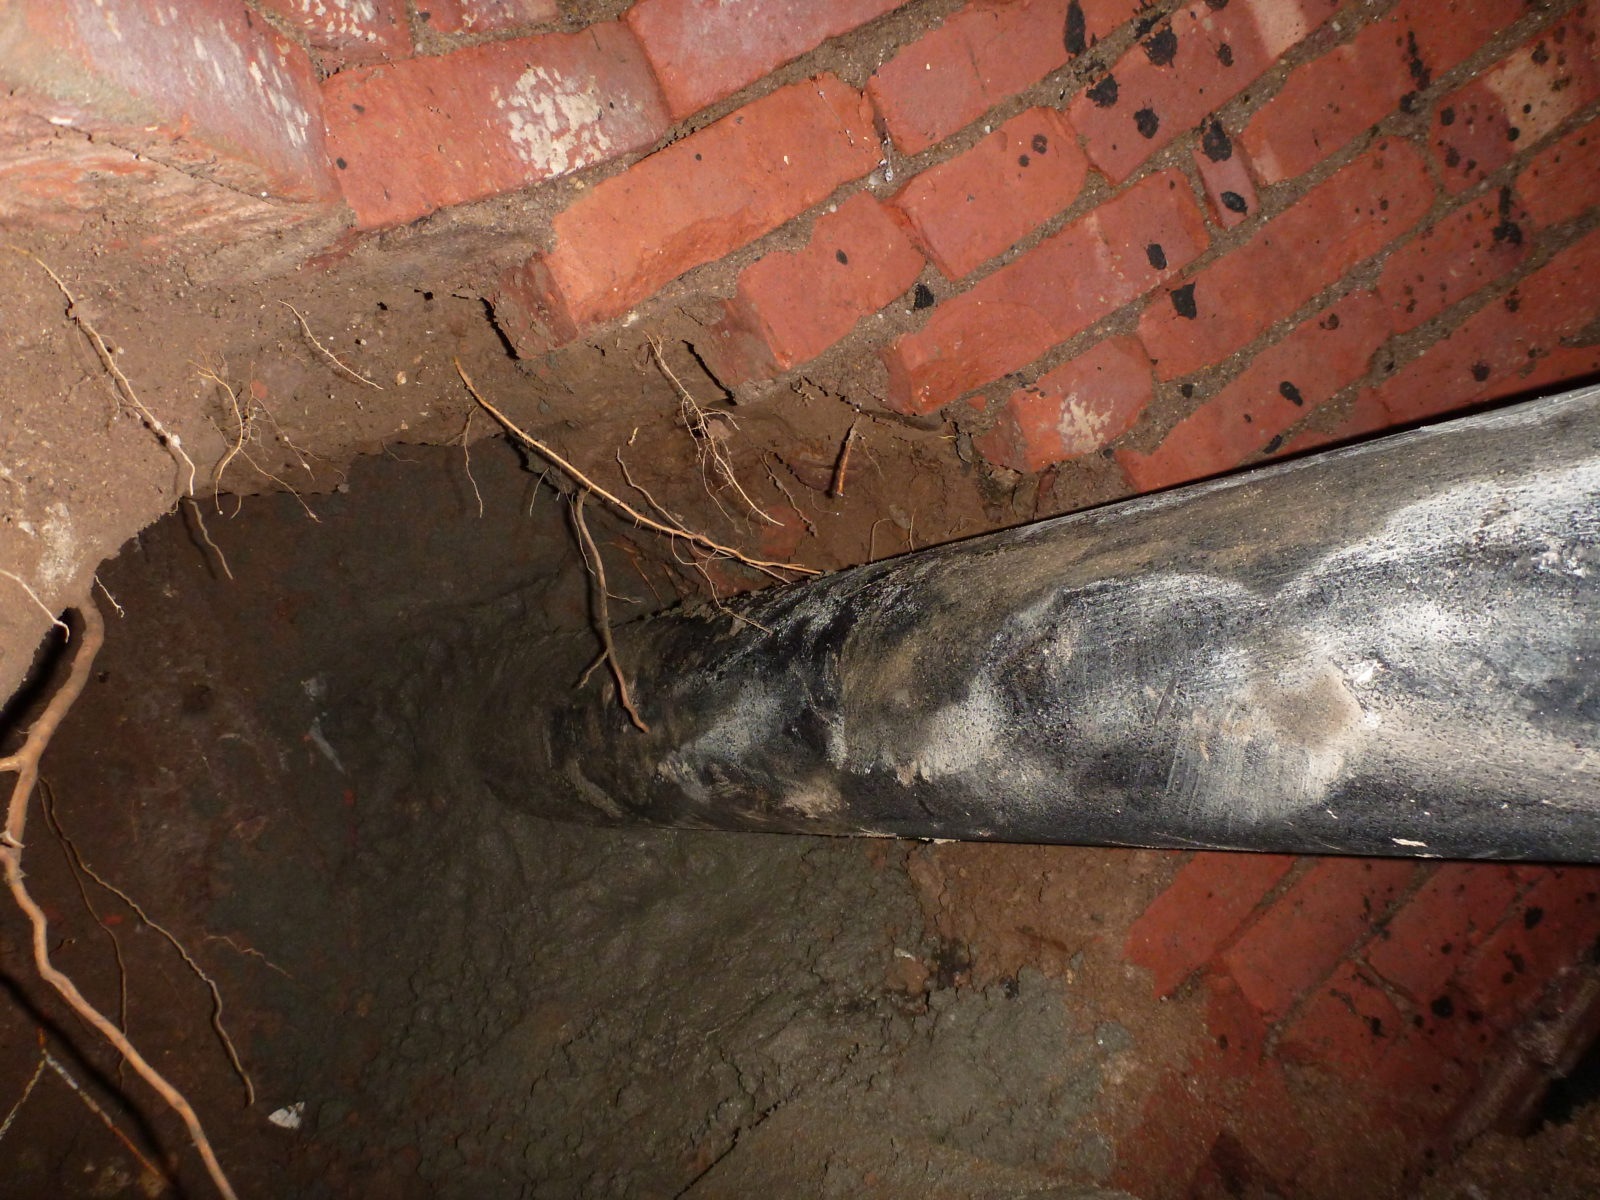 Root intrusion leads to sewer pipe repair harris water main